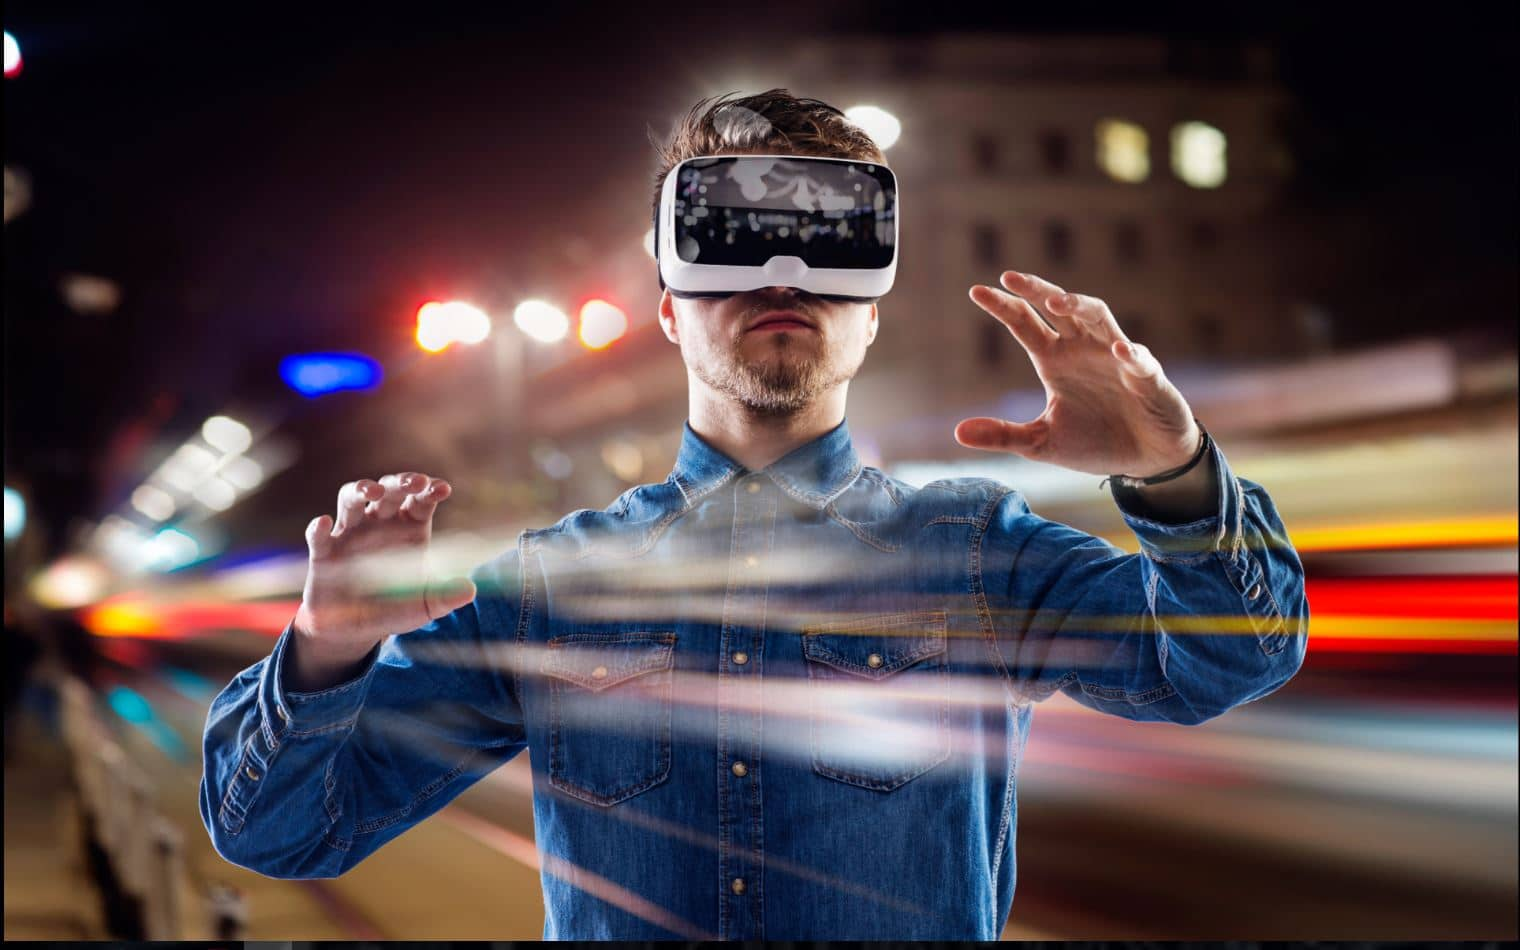 5G Networks will use AR/VR to Enable Next-gen Shopping Experiences